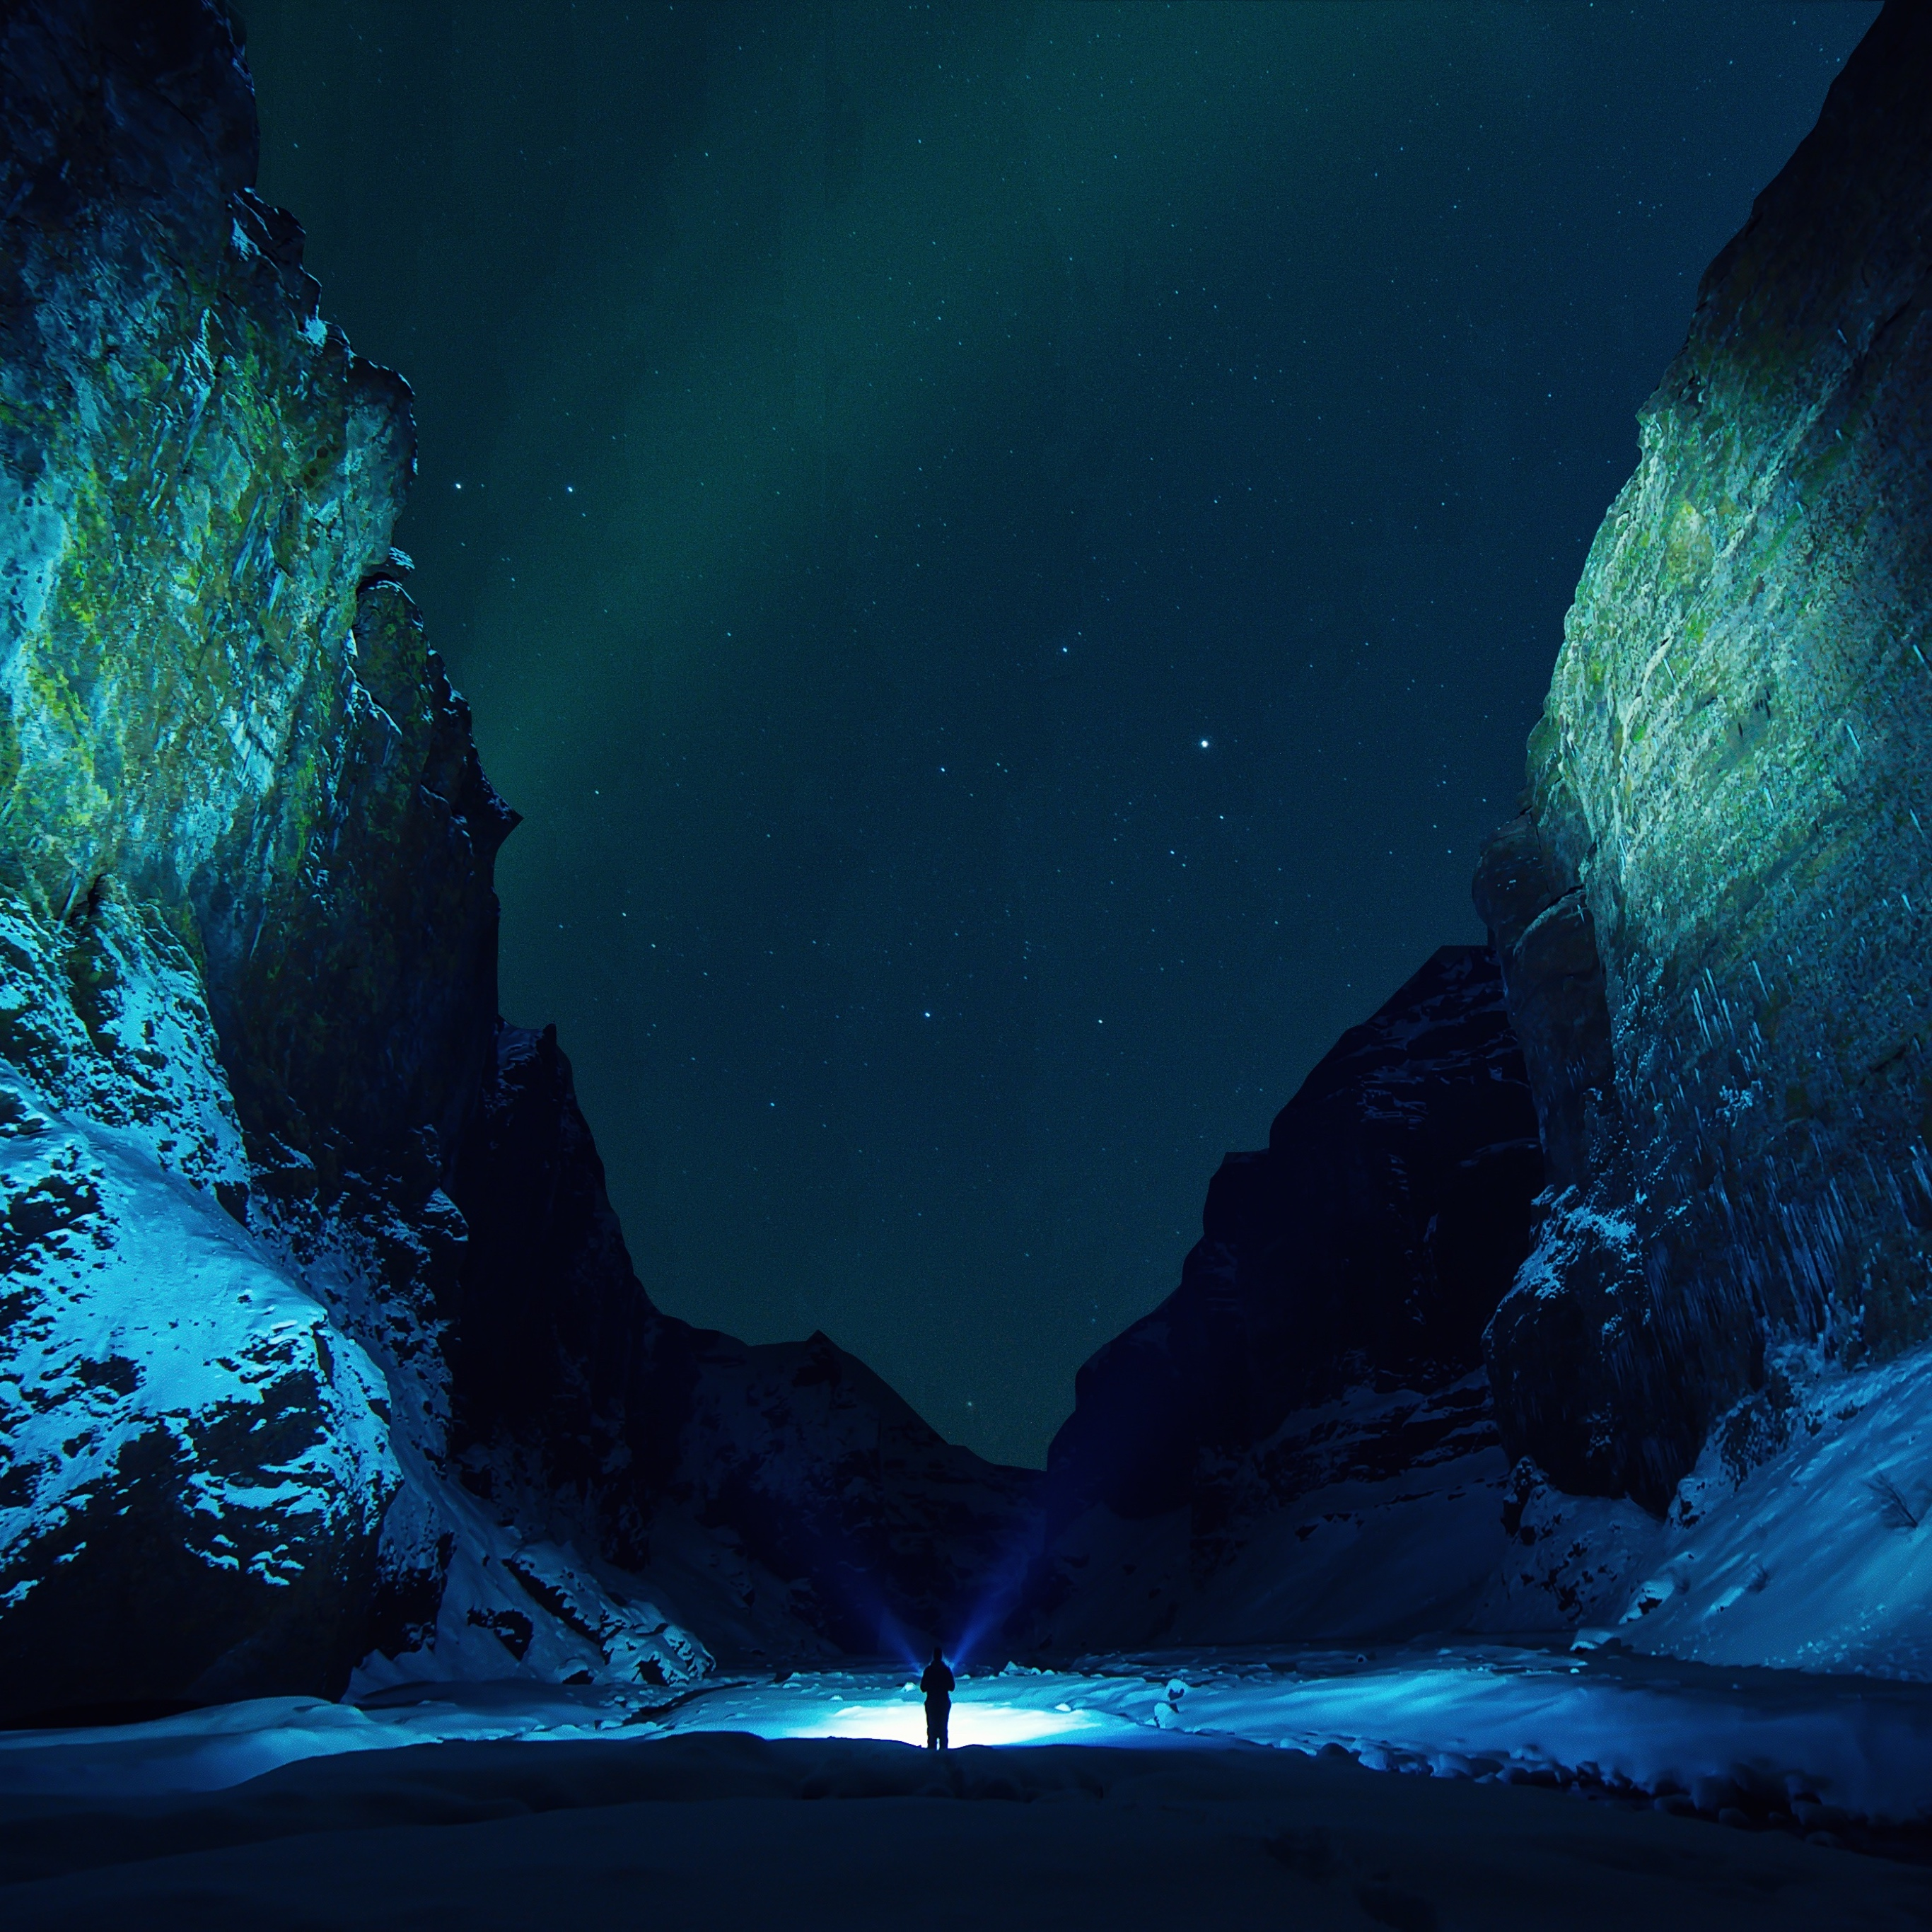 Wallpaper Weekends Enlightened for Your Mac iPad iPhone and 2732x2732